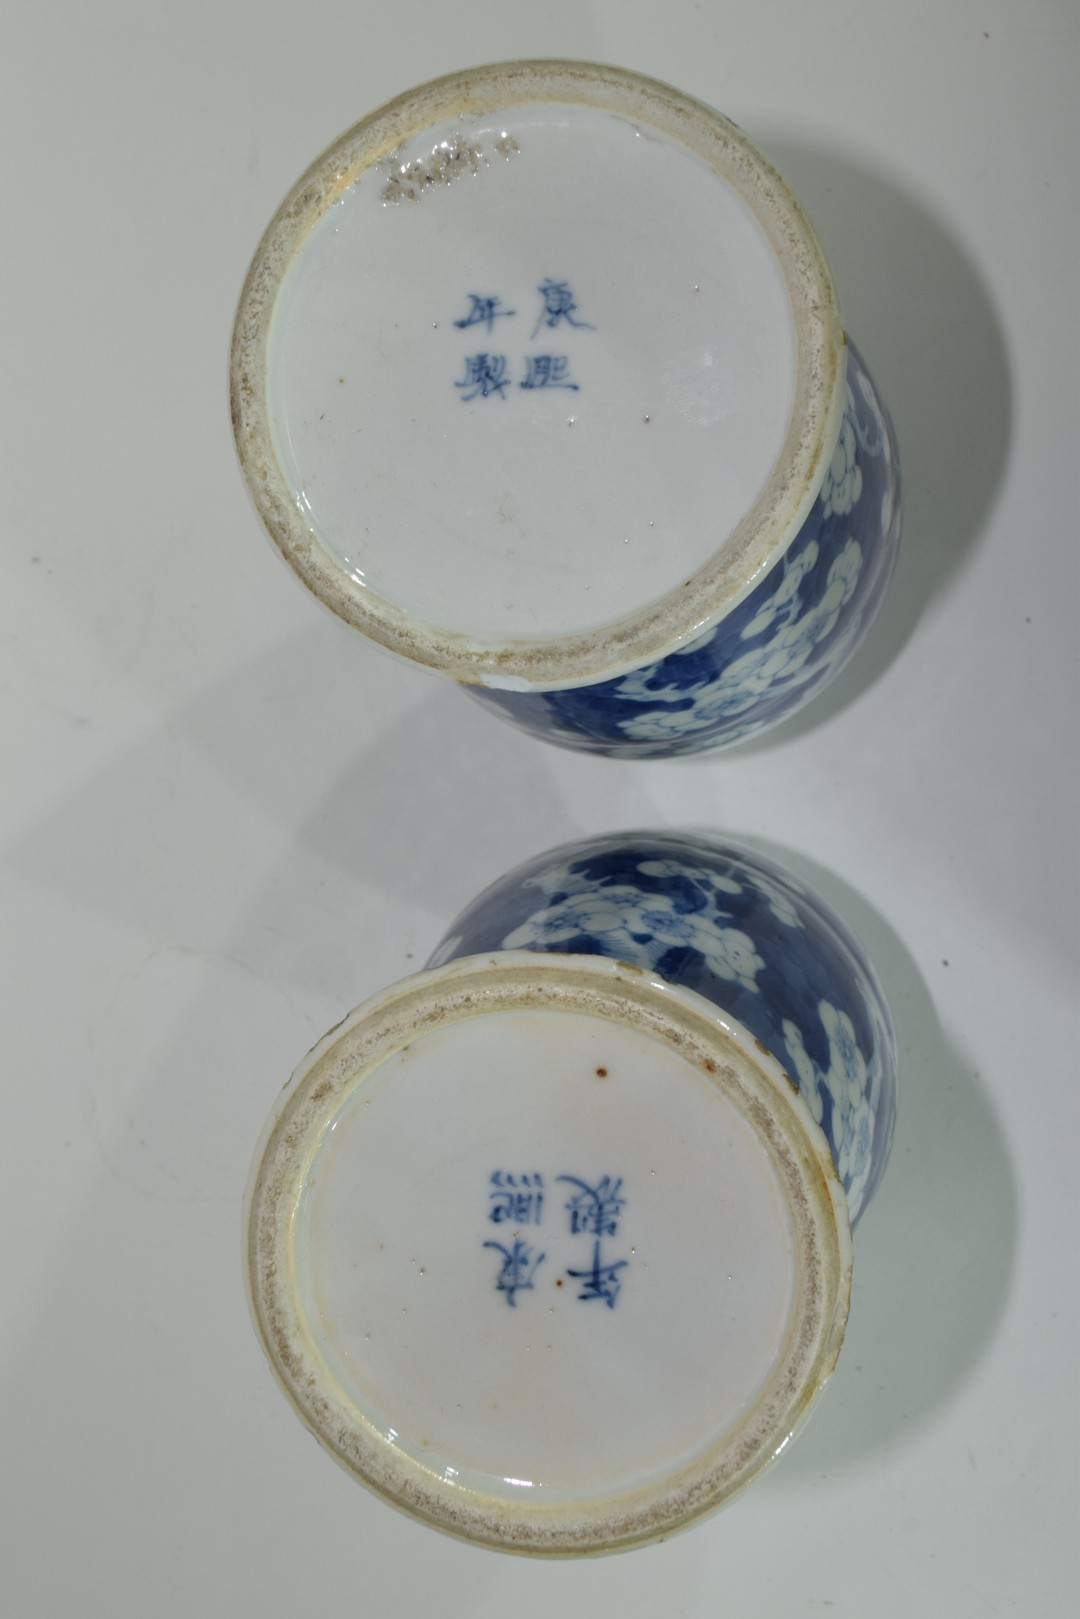 Pair of 19th century Chinese porcelain vases and covers - Image 9 of 9